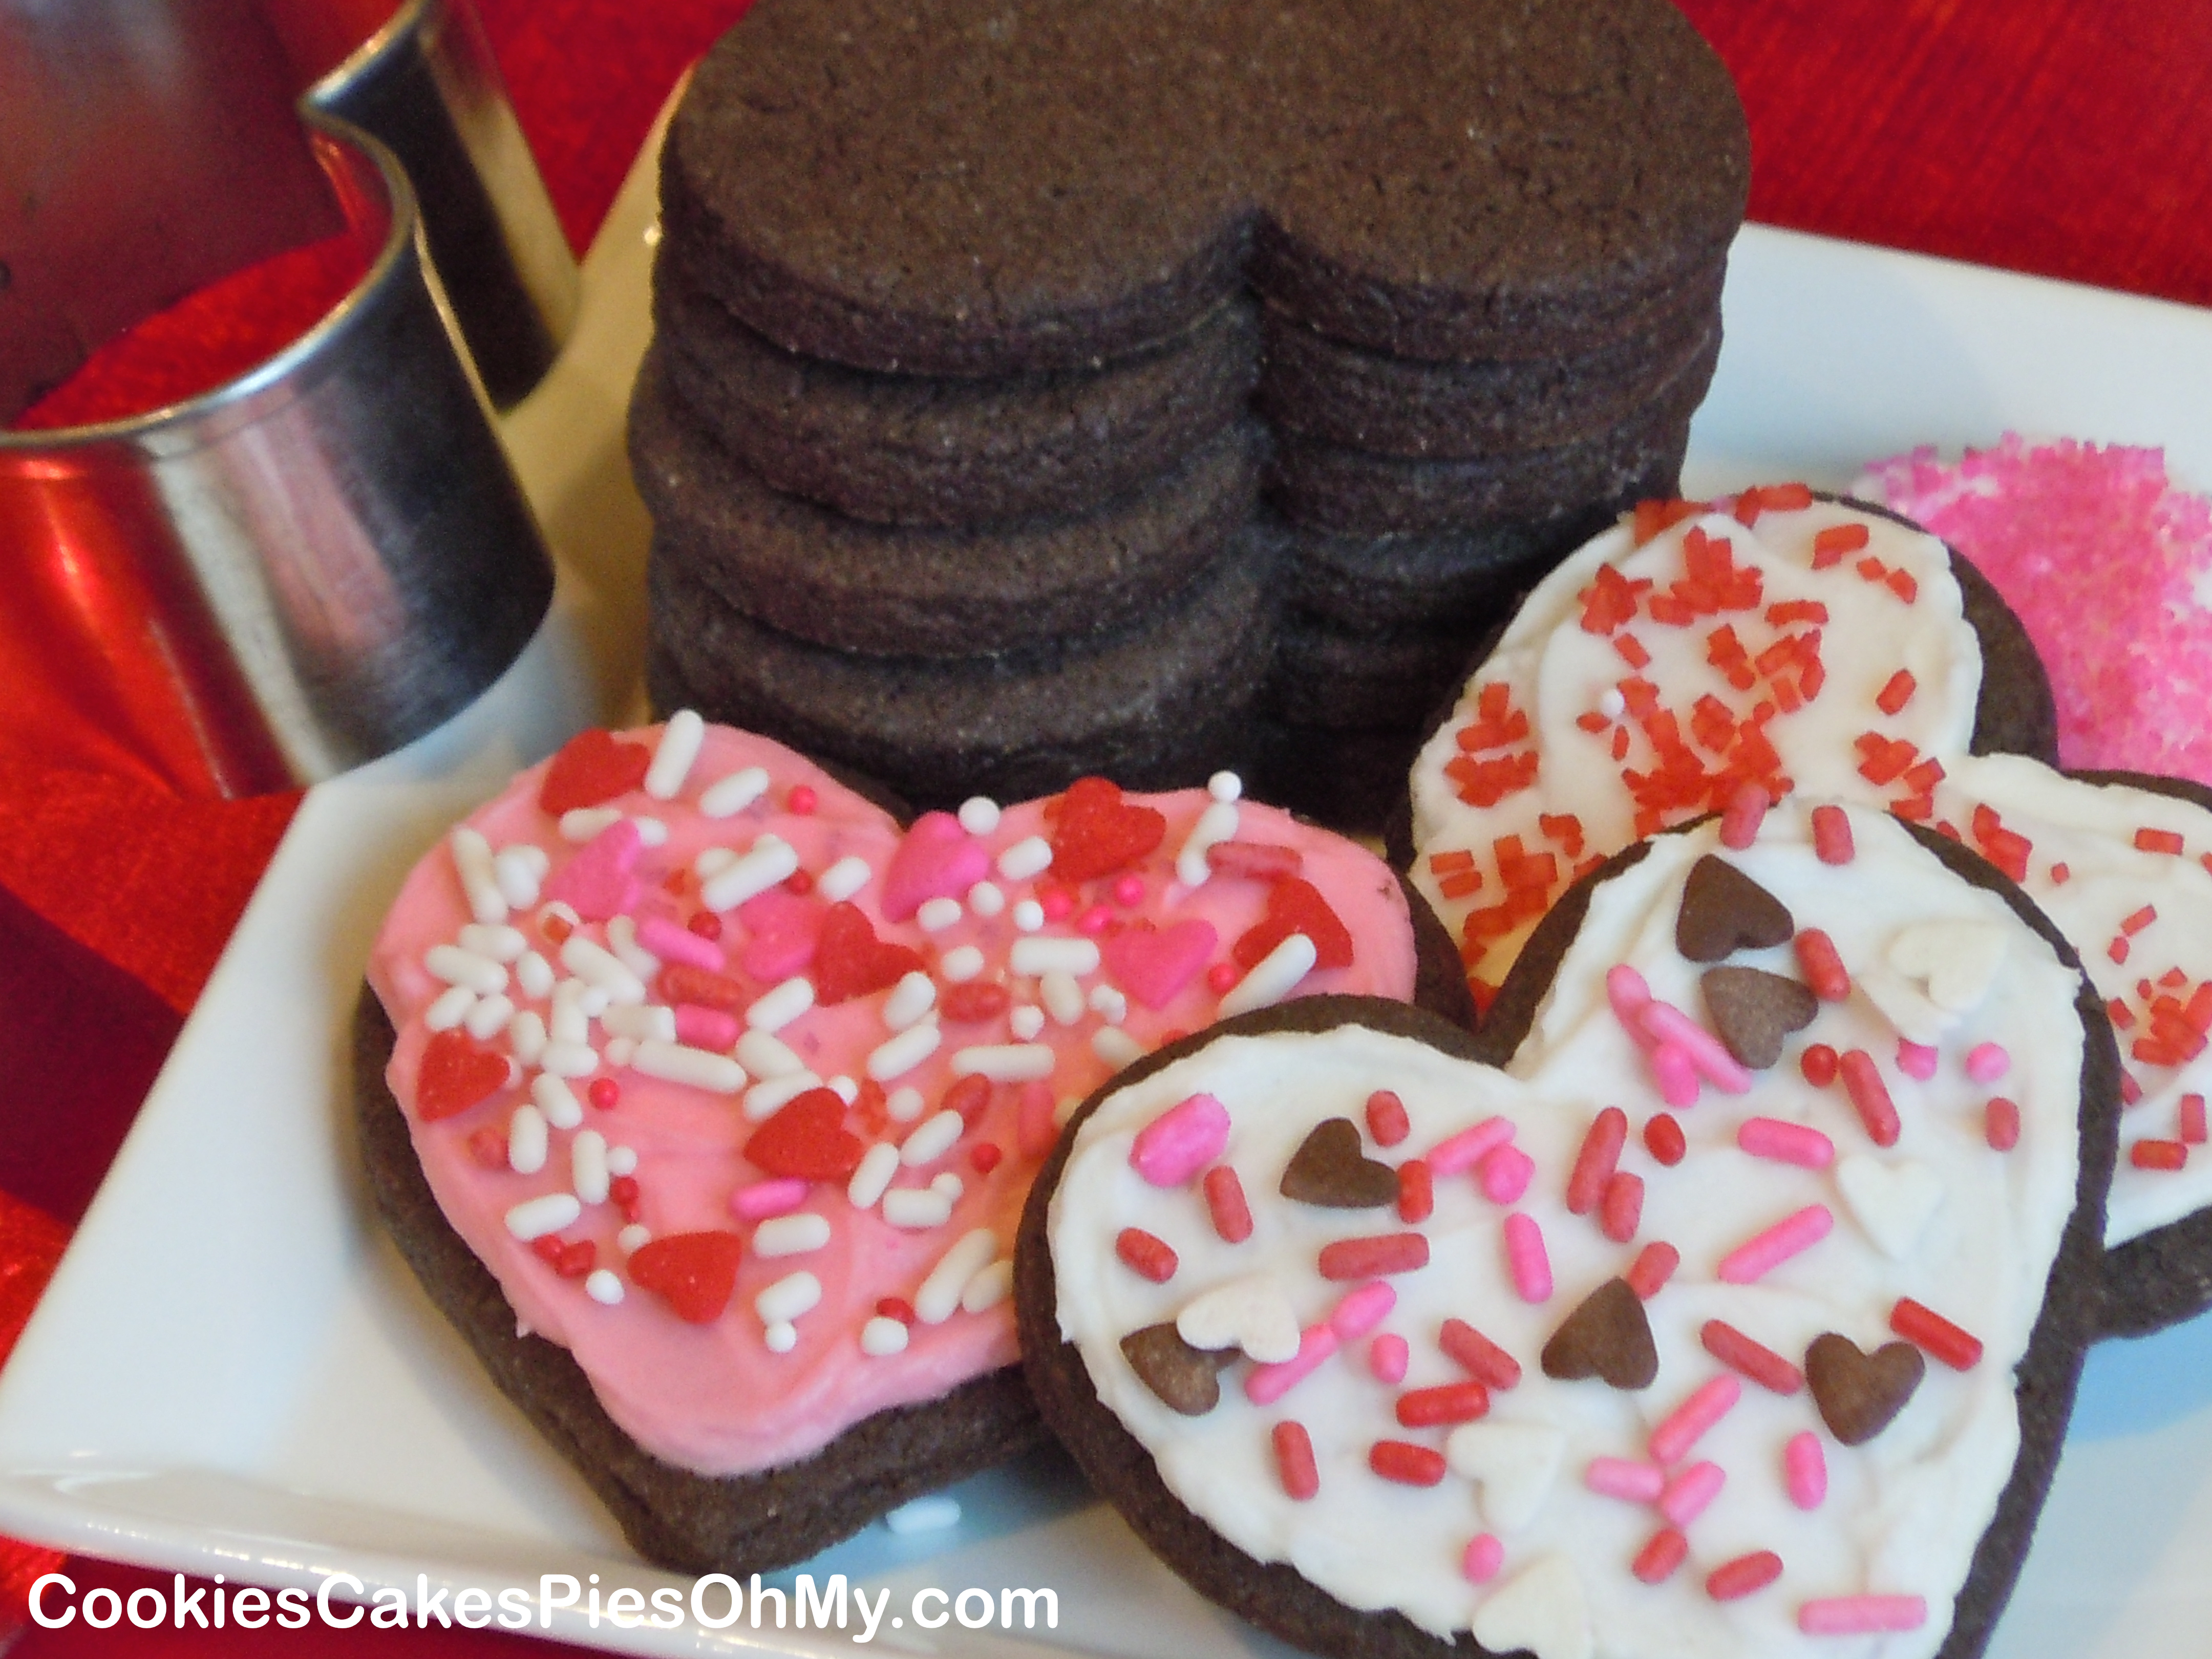 Rolled frosted sugar cookie recipe